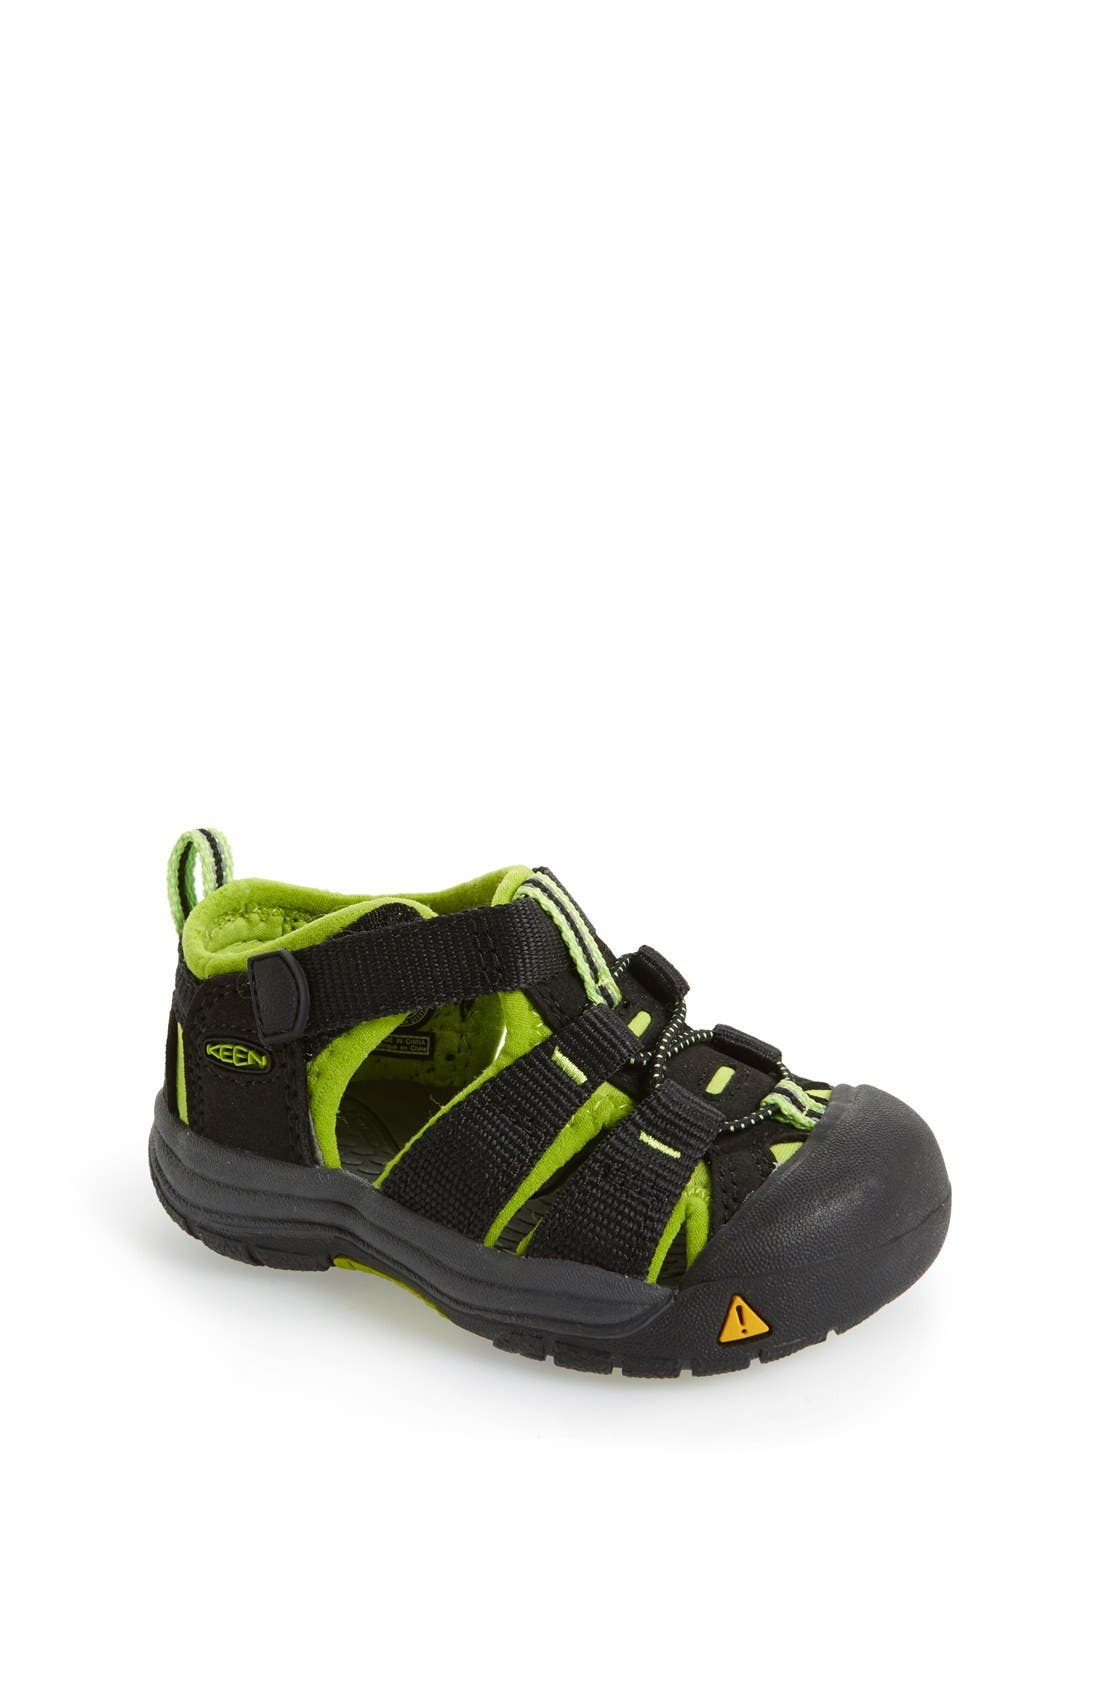 Keen 'Newport H2' Water Friendly Sandal (Baby, Walker, Toddler, Little Kid & Big Kid)